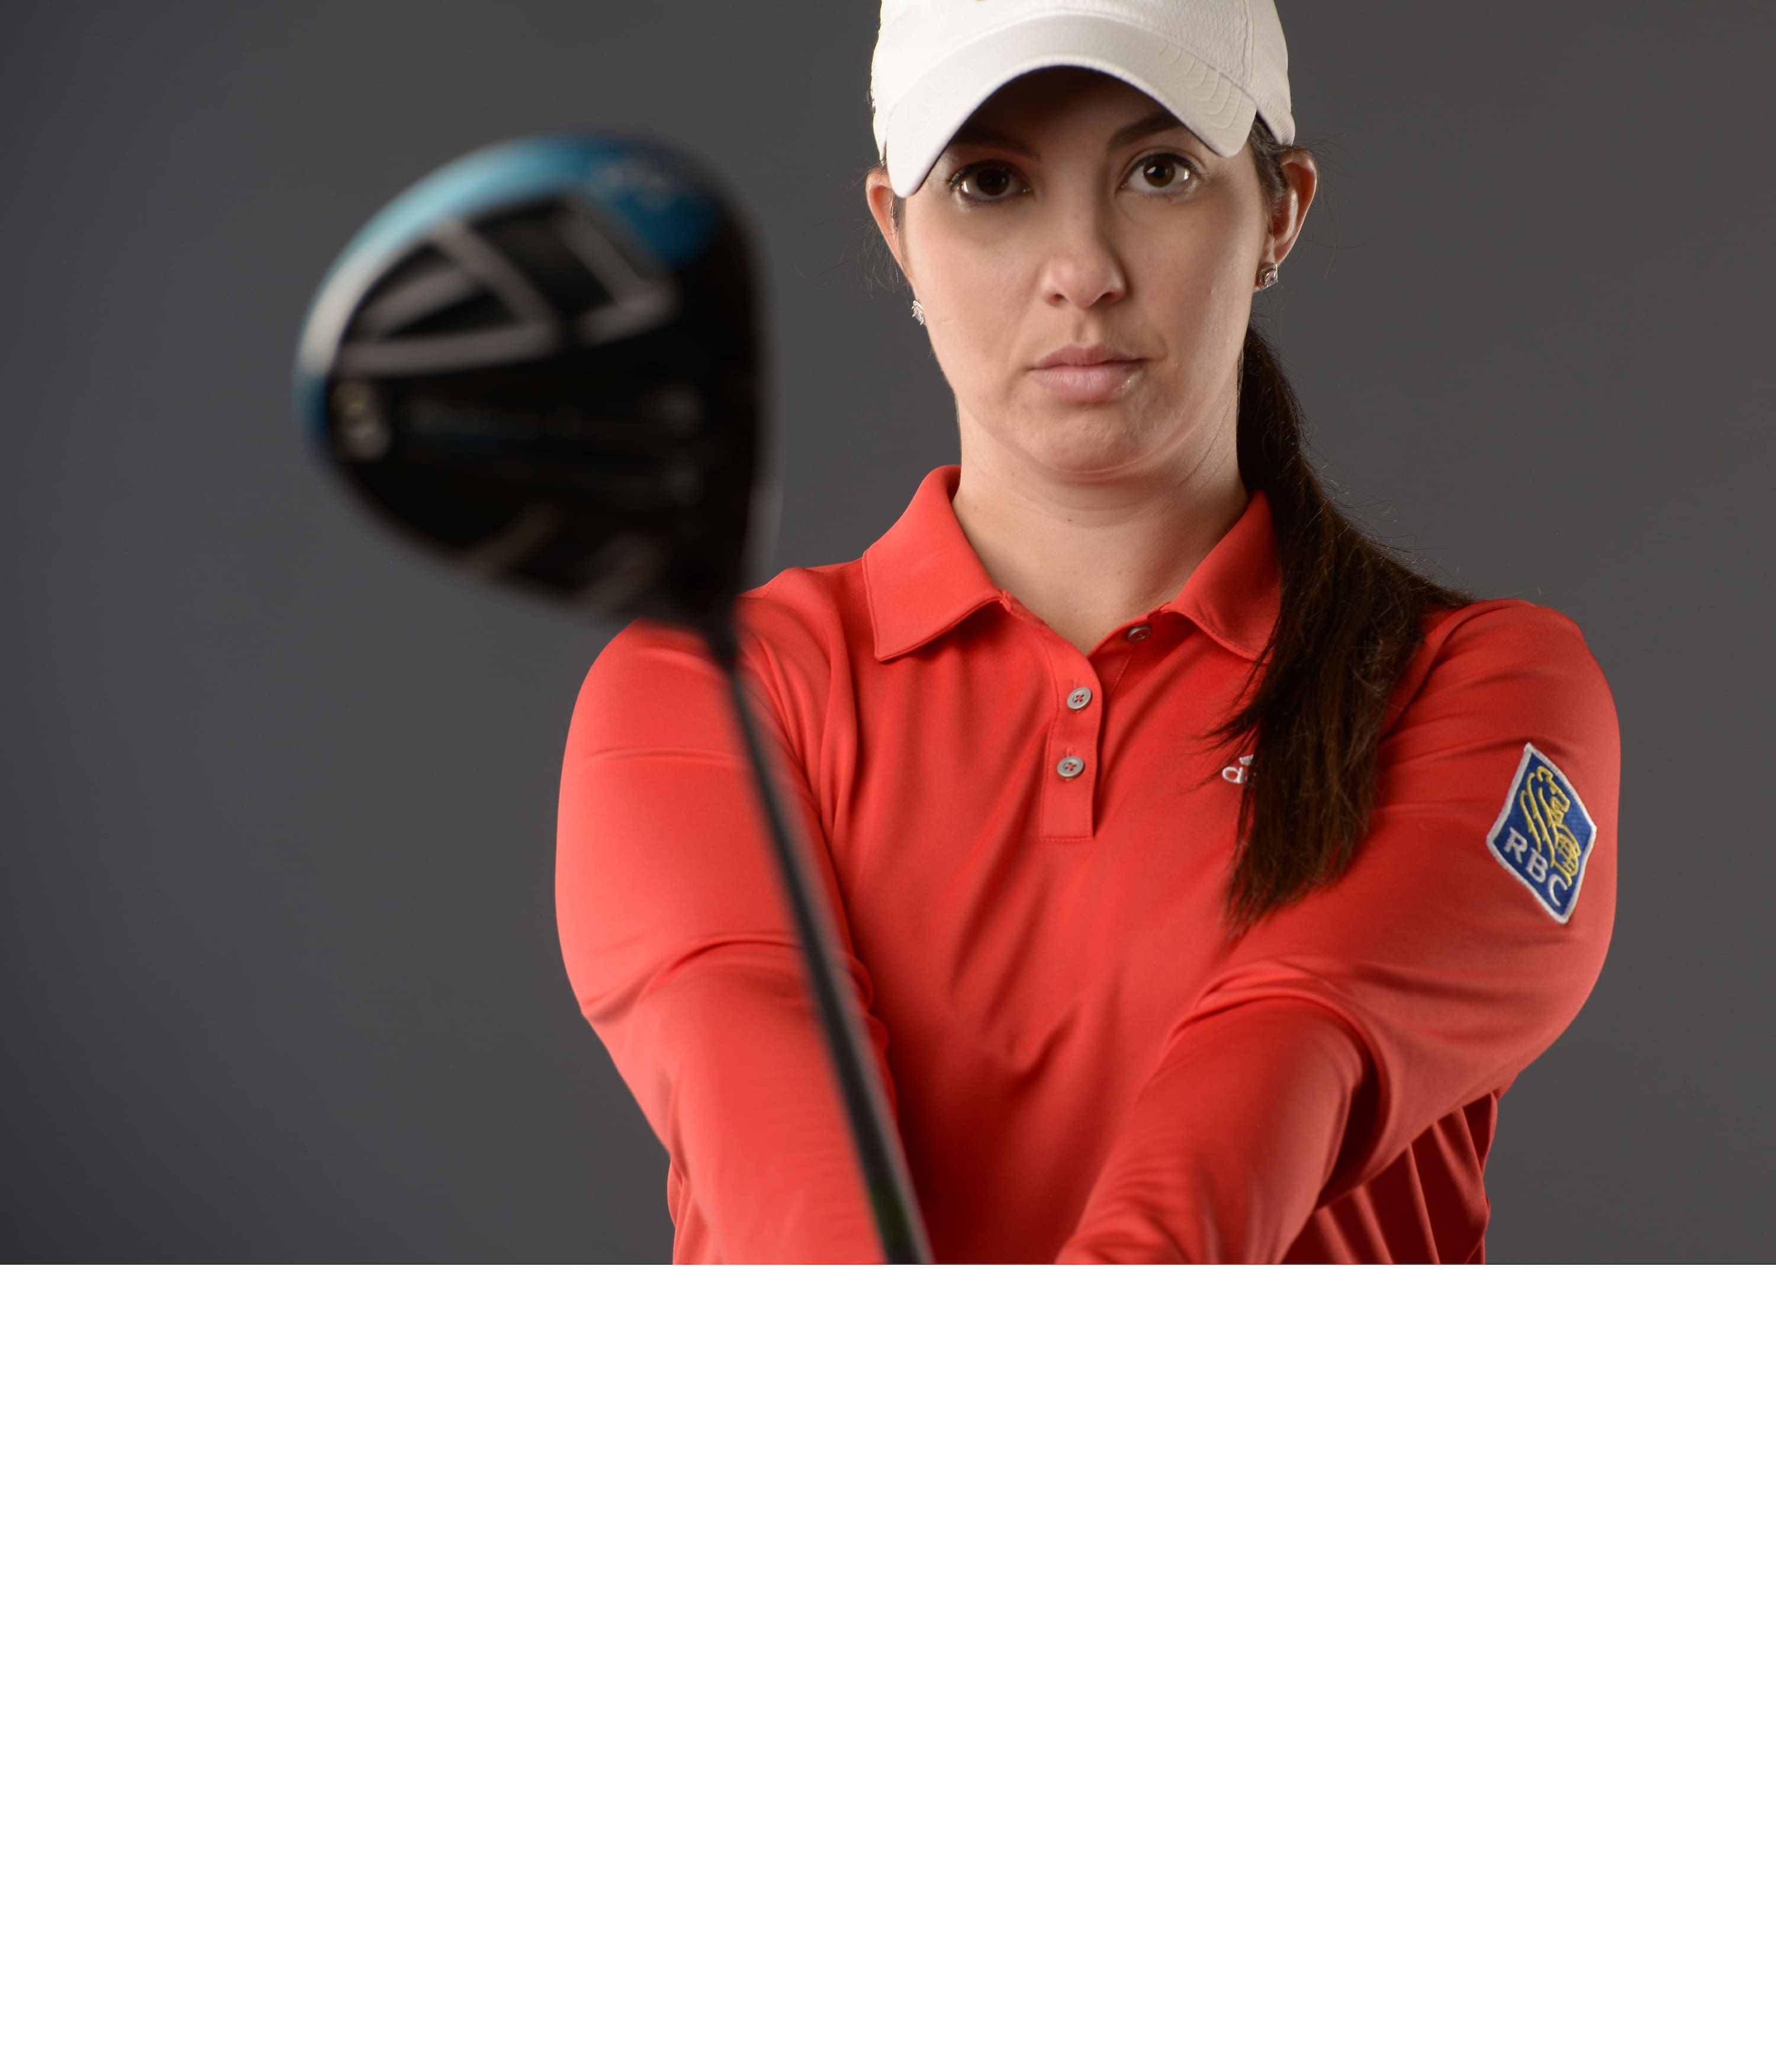 I'm a chemical engineer. But right now, I'm an LPGA Tour golfer